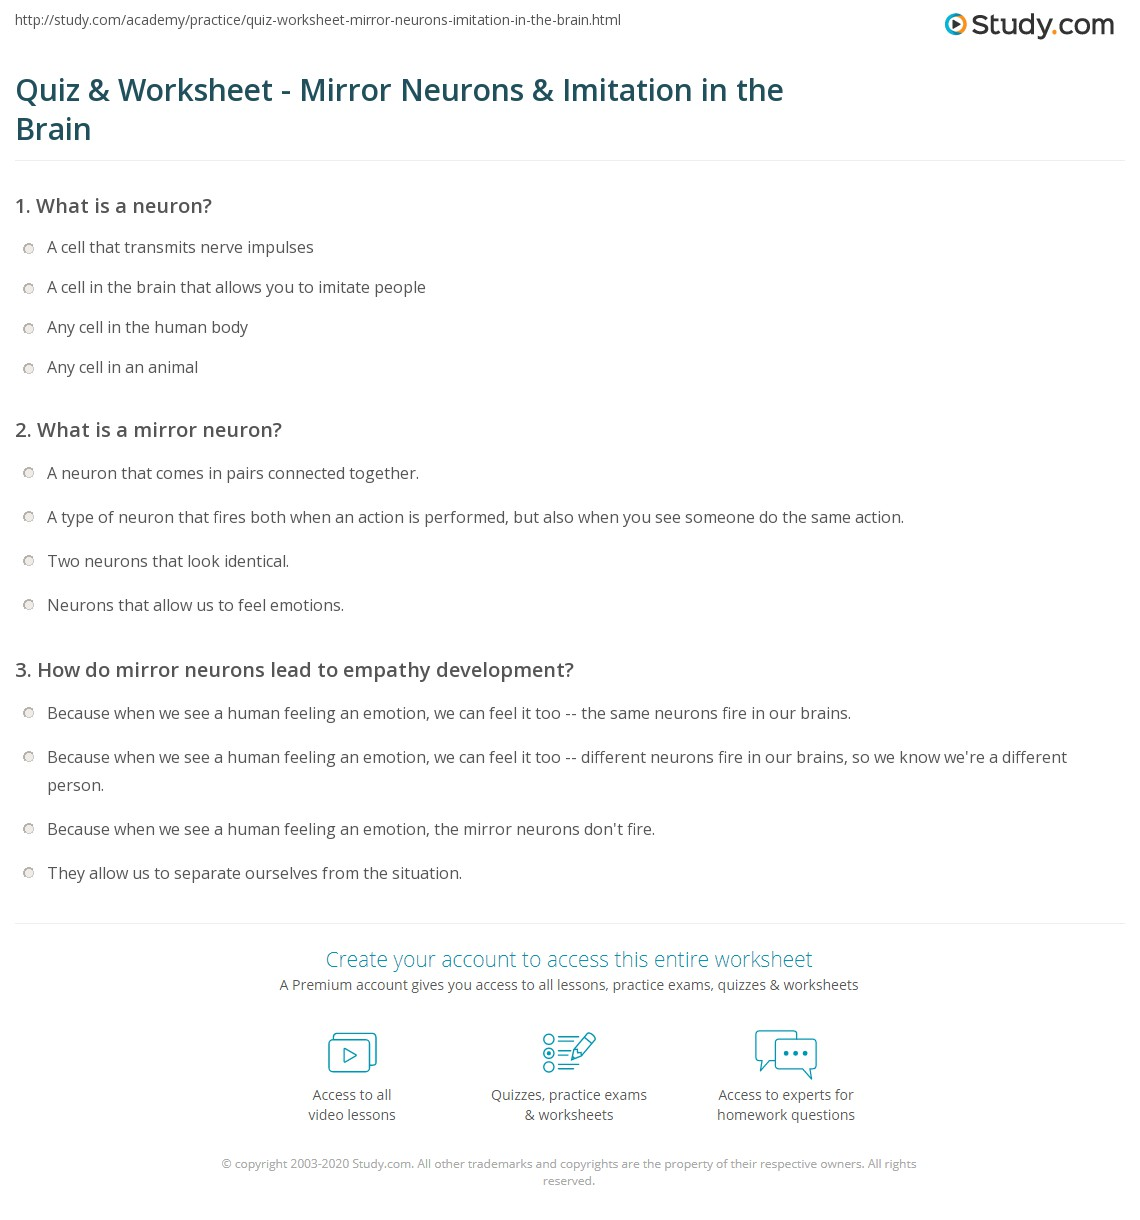 Printables Neuron Worksheet quiz worksheet mirror neurons imitation in the brain study com print and worksheet